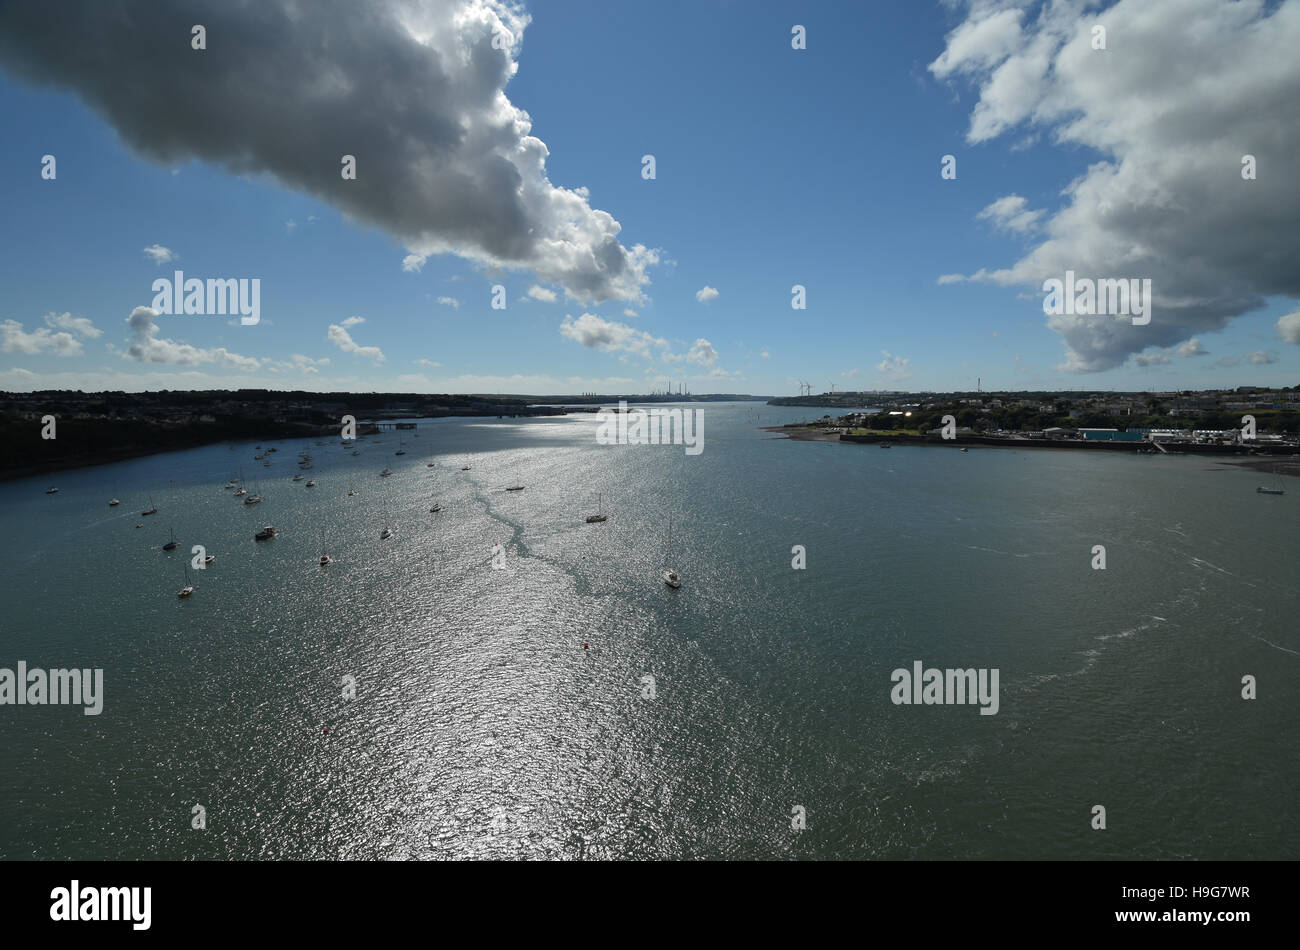 Dramatic view looking west down Milford Haven from the Cleddau bridge Stock Photo